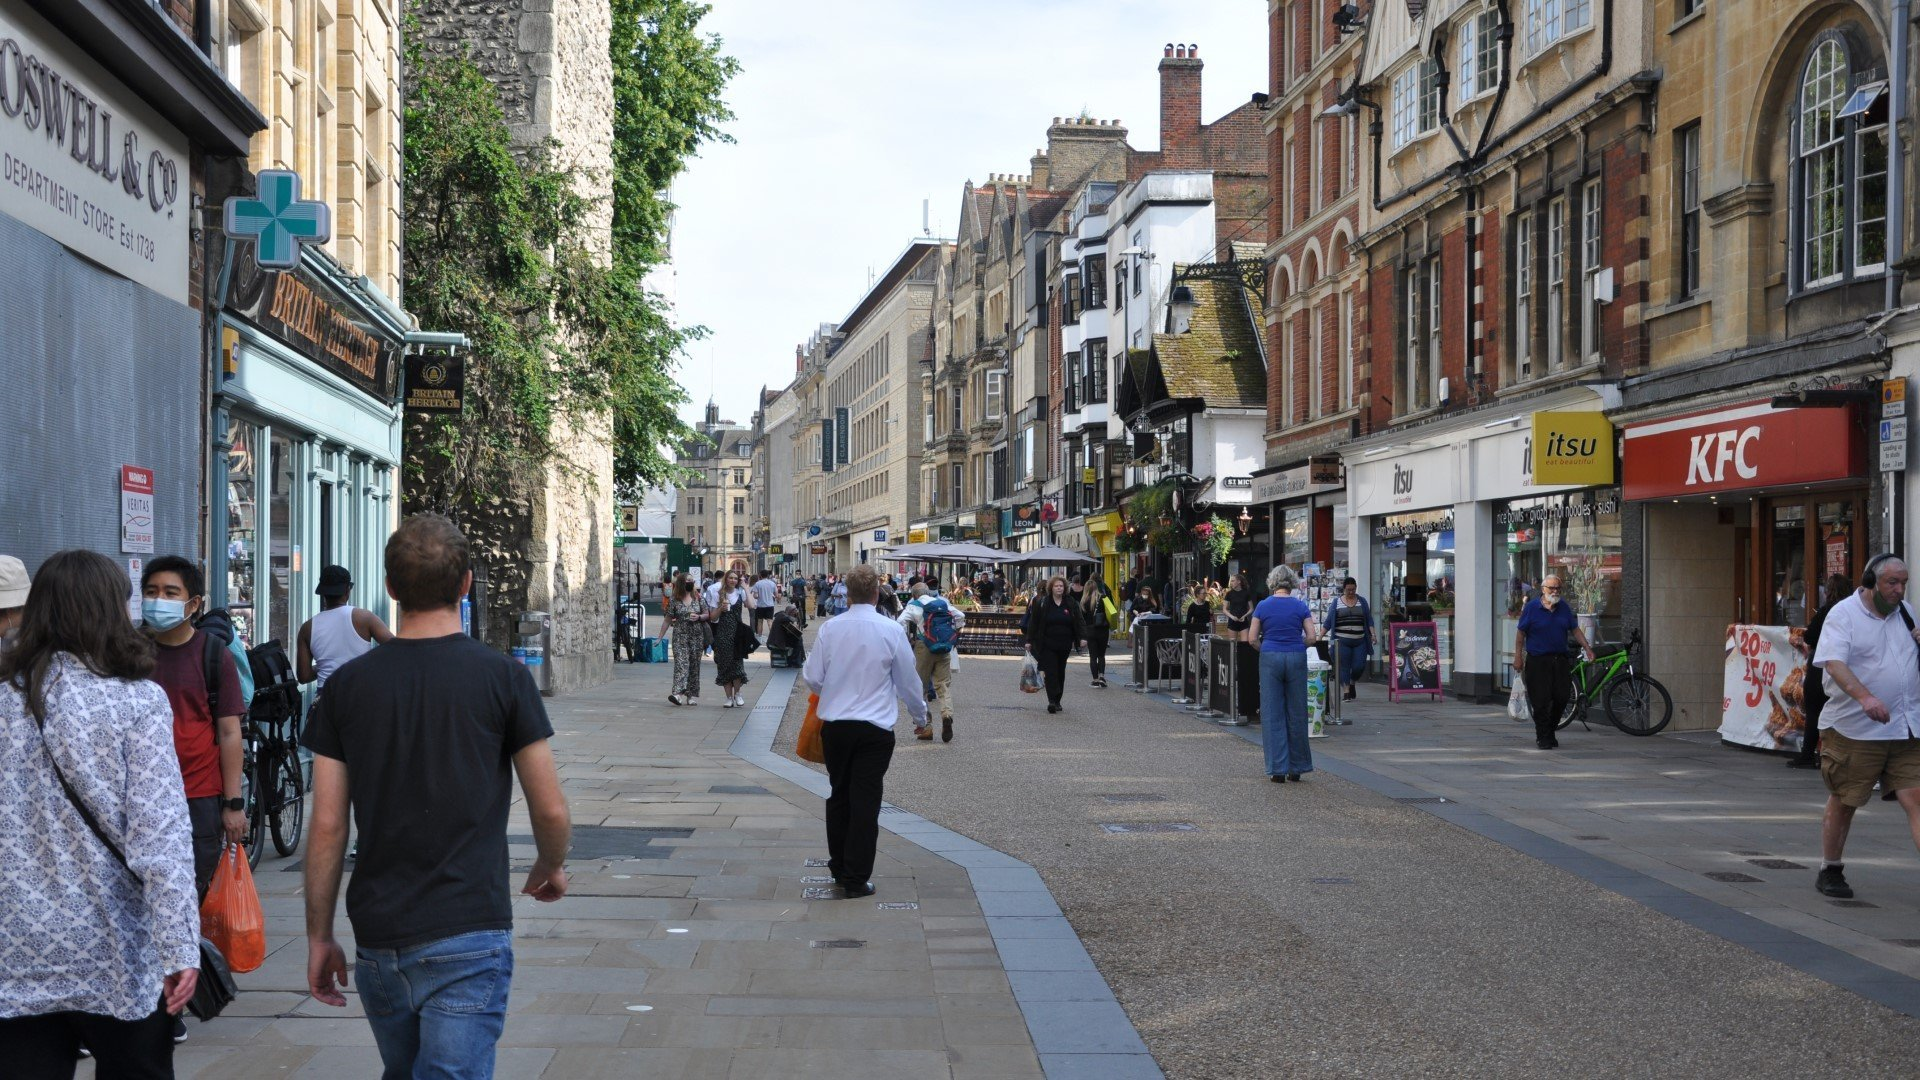 COVID-19 cases in Oxford is highest in south-east